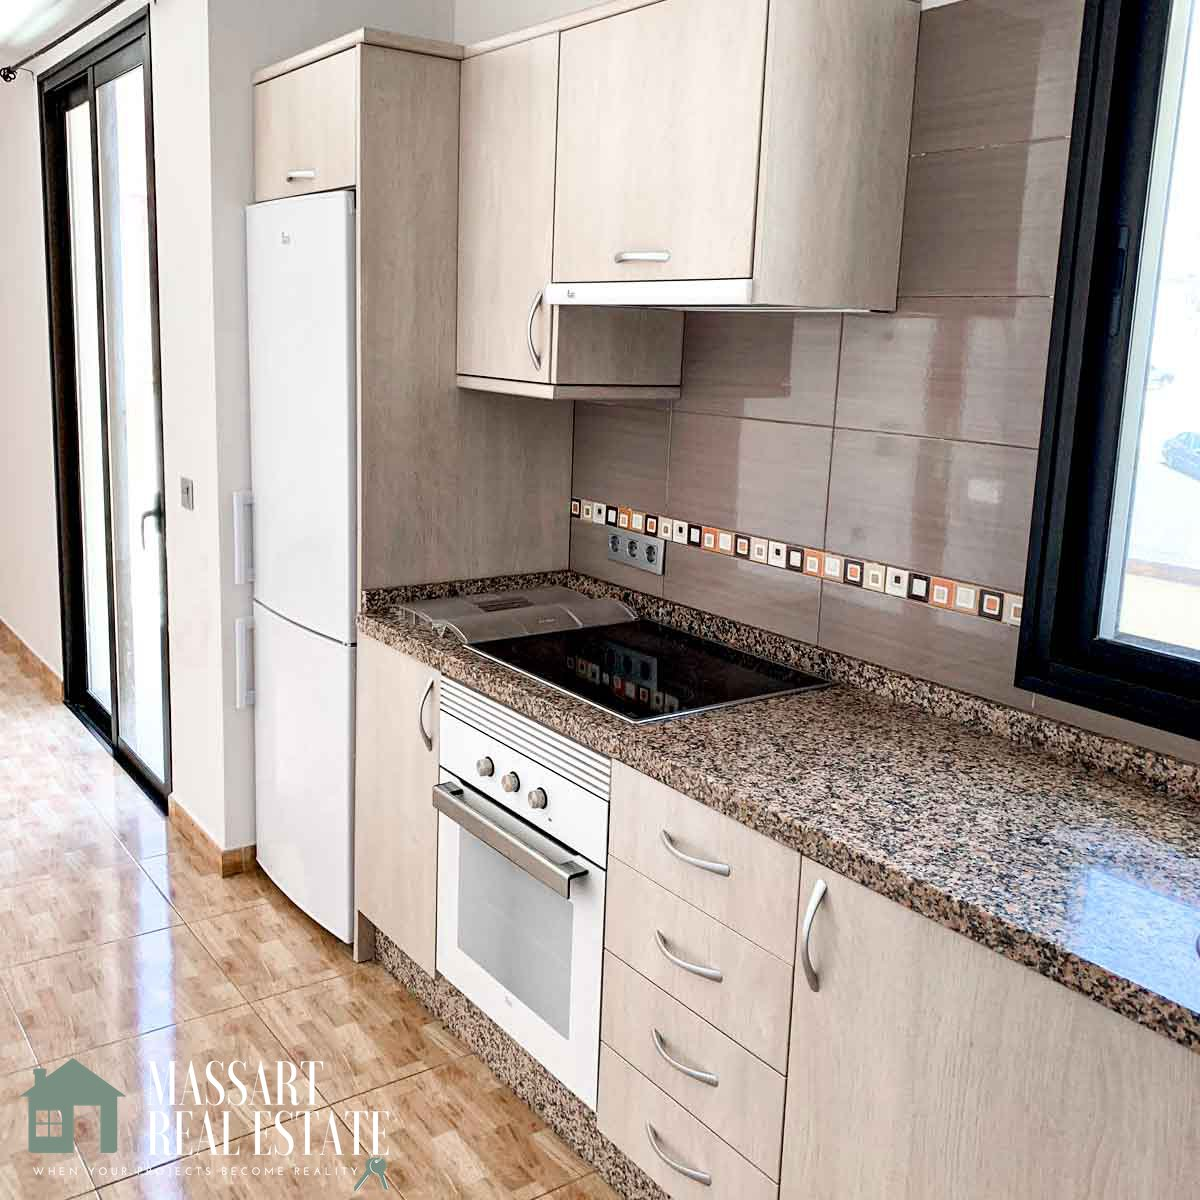 For rent Apartment in Adele 1bd - 800€